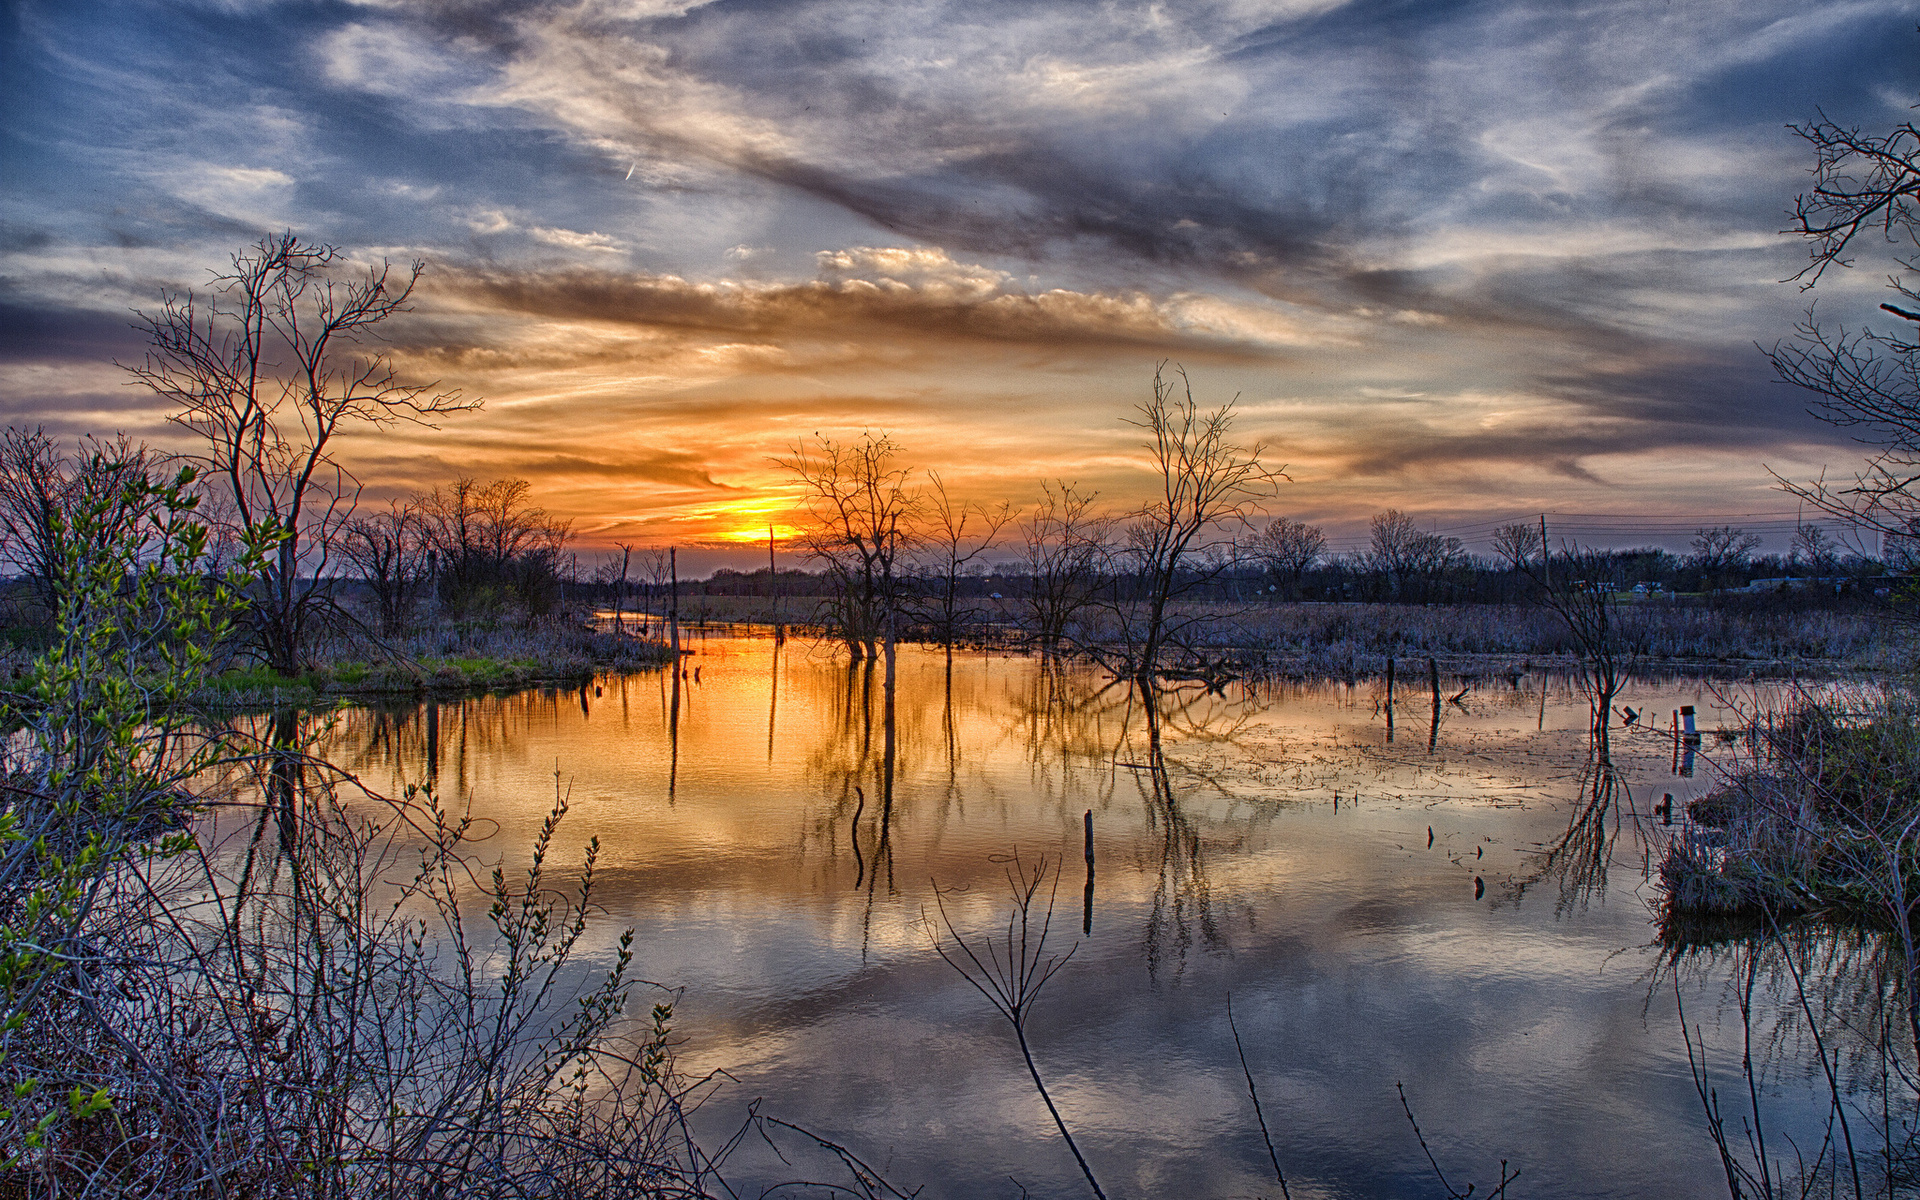 47844 download wallpaper Landscape, Nature, Sunset, Lakes screensavers and pictures for free